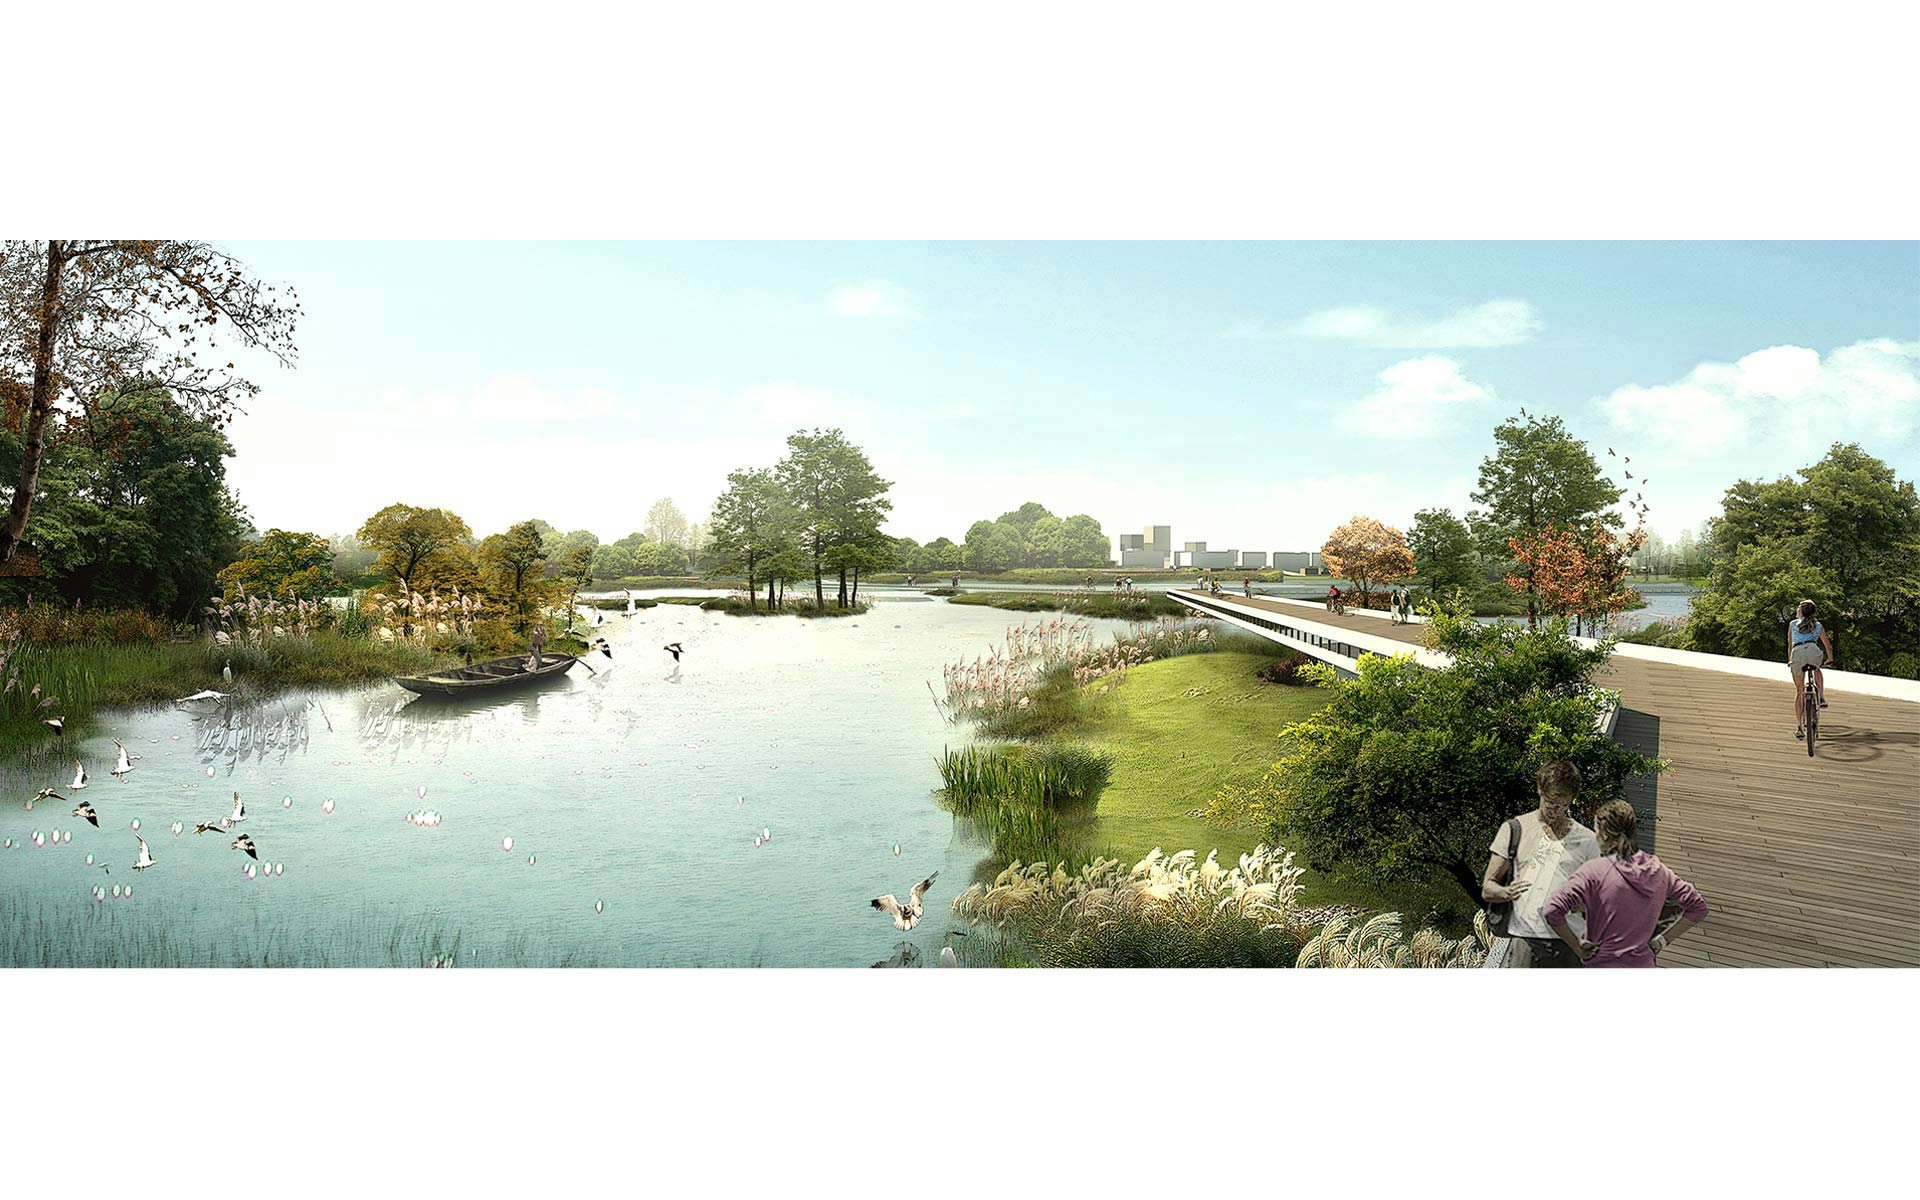 Sino german eco park landscape ecological design for Eco landscape design